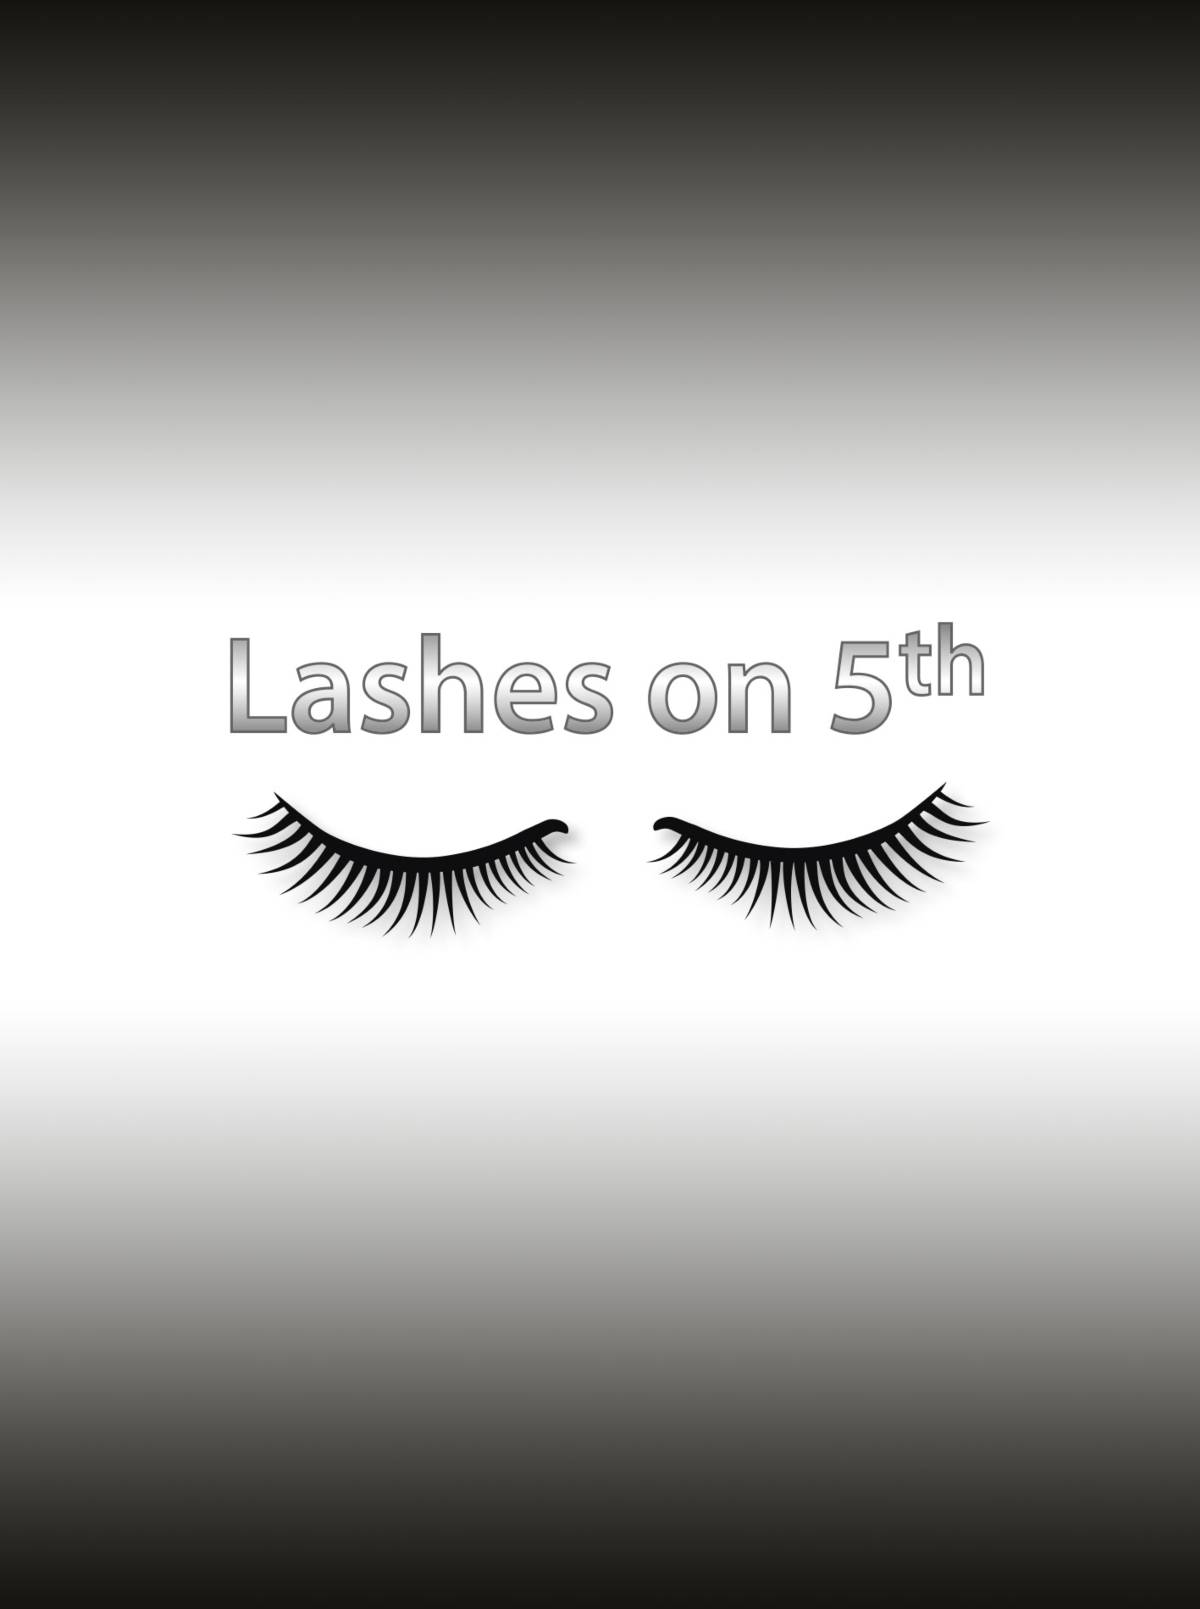 Logo_Lashes_on_5th_06012018